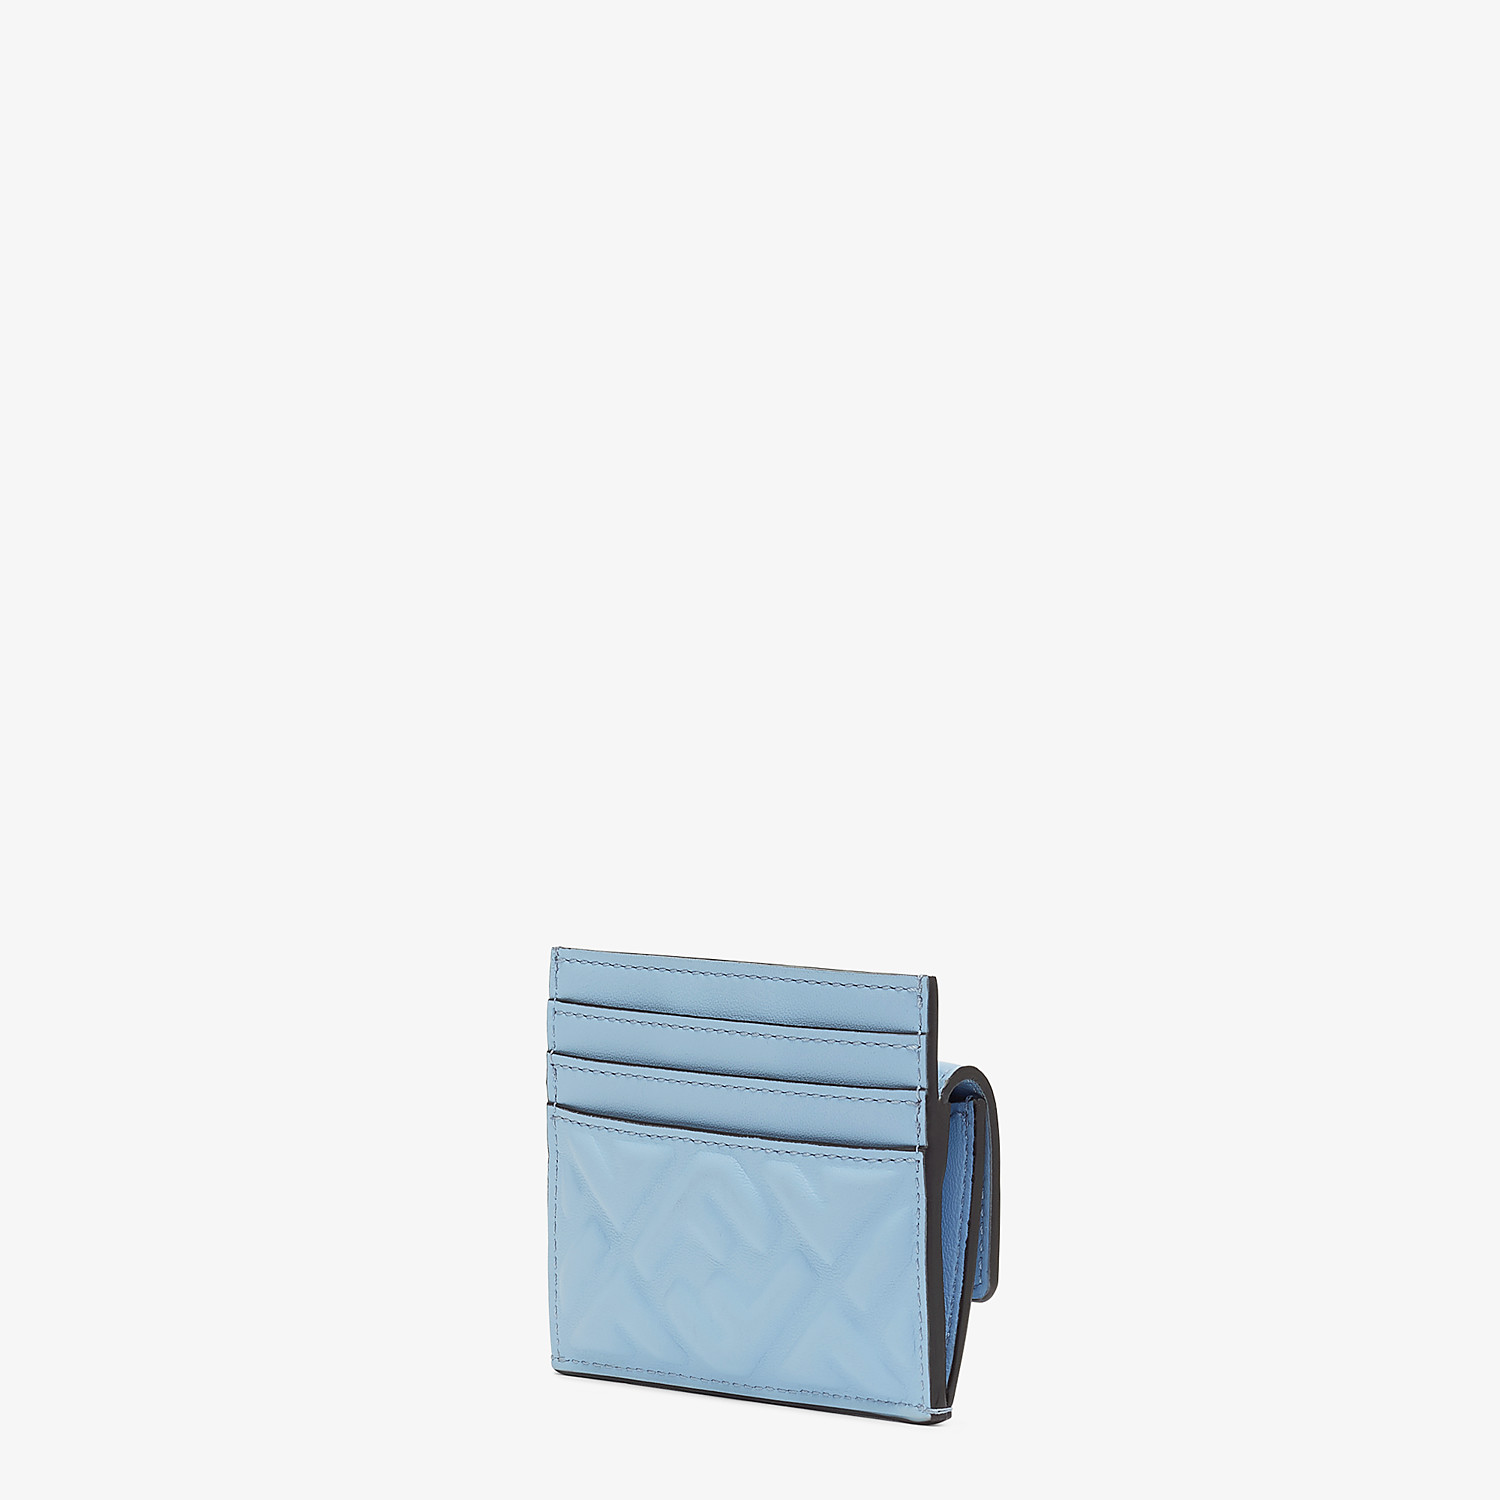 FENDI CARD HOLDER - Cardholder in light blue nappa leather - view 2 detail